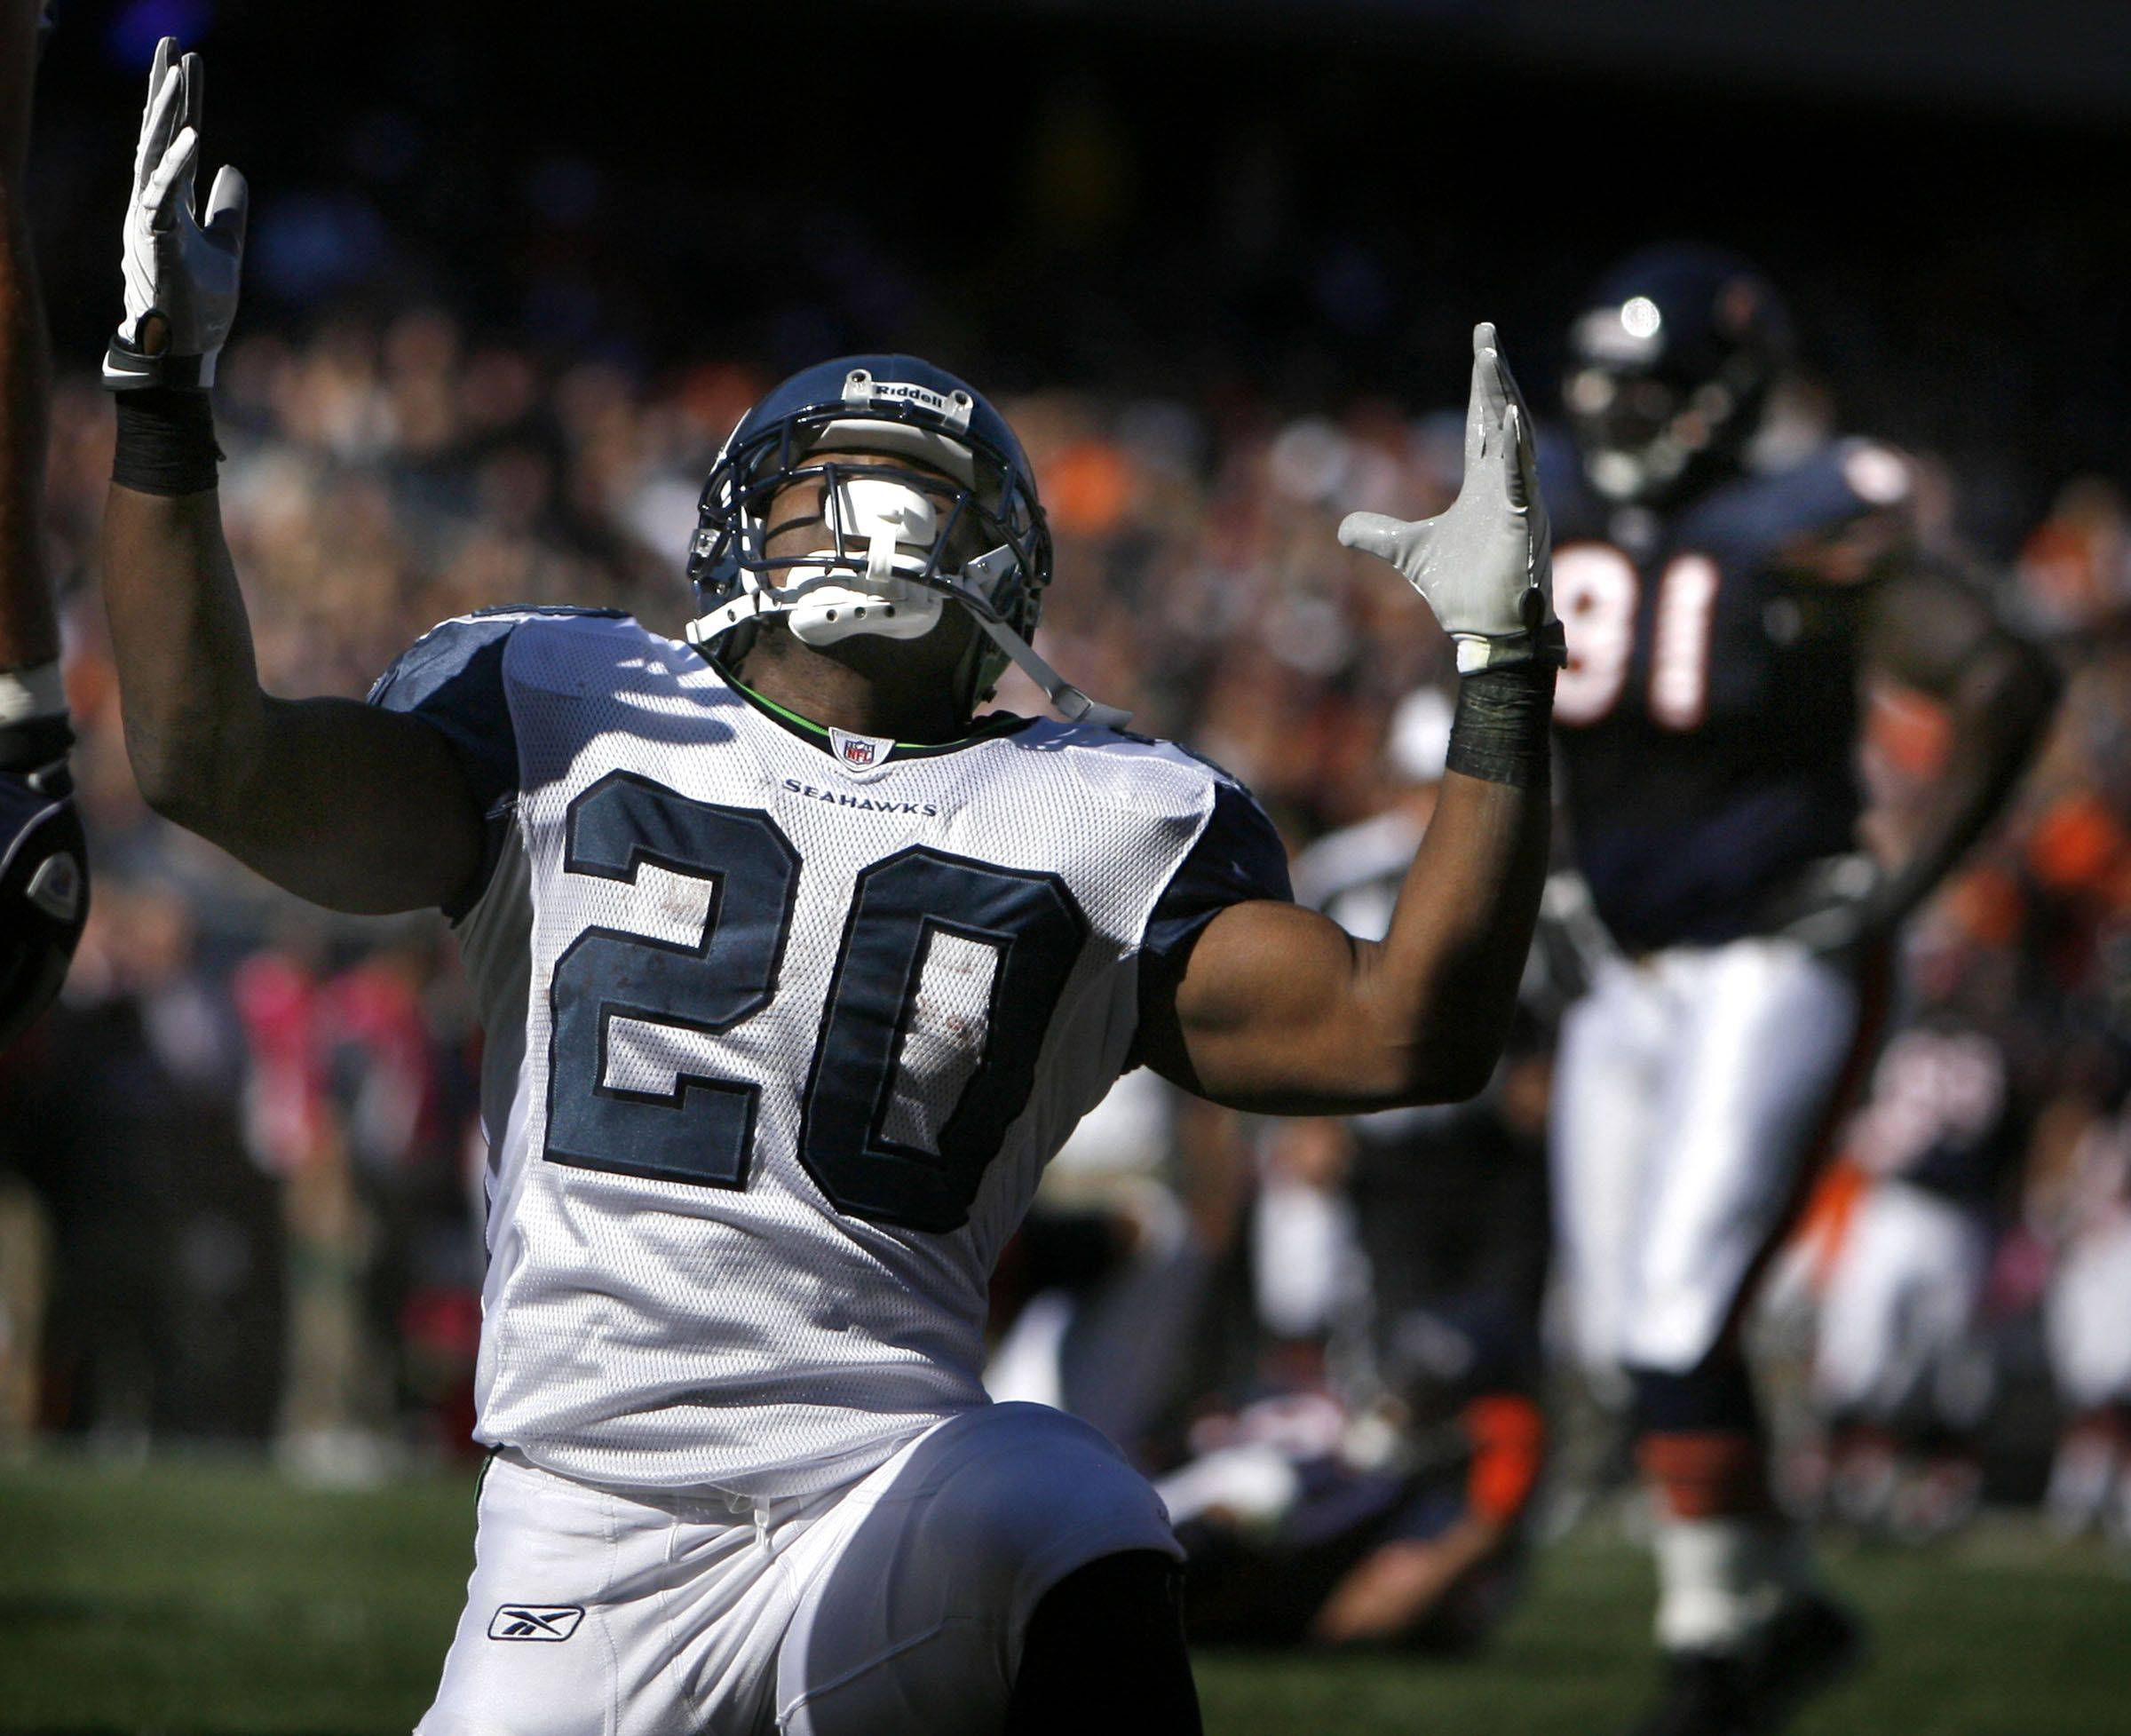 Seattle Seahawks' running back Justin Forsett celebrates a touchdown against the Chicago Bears at Soldier Field.